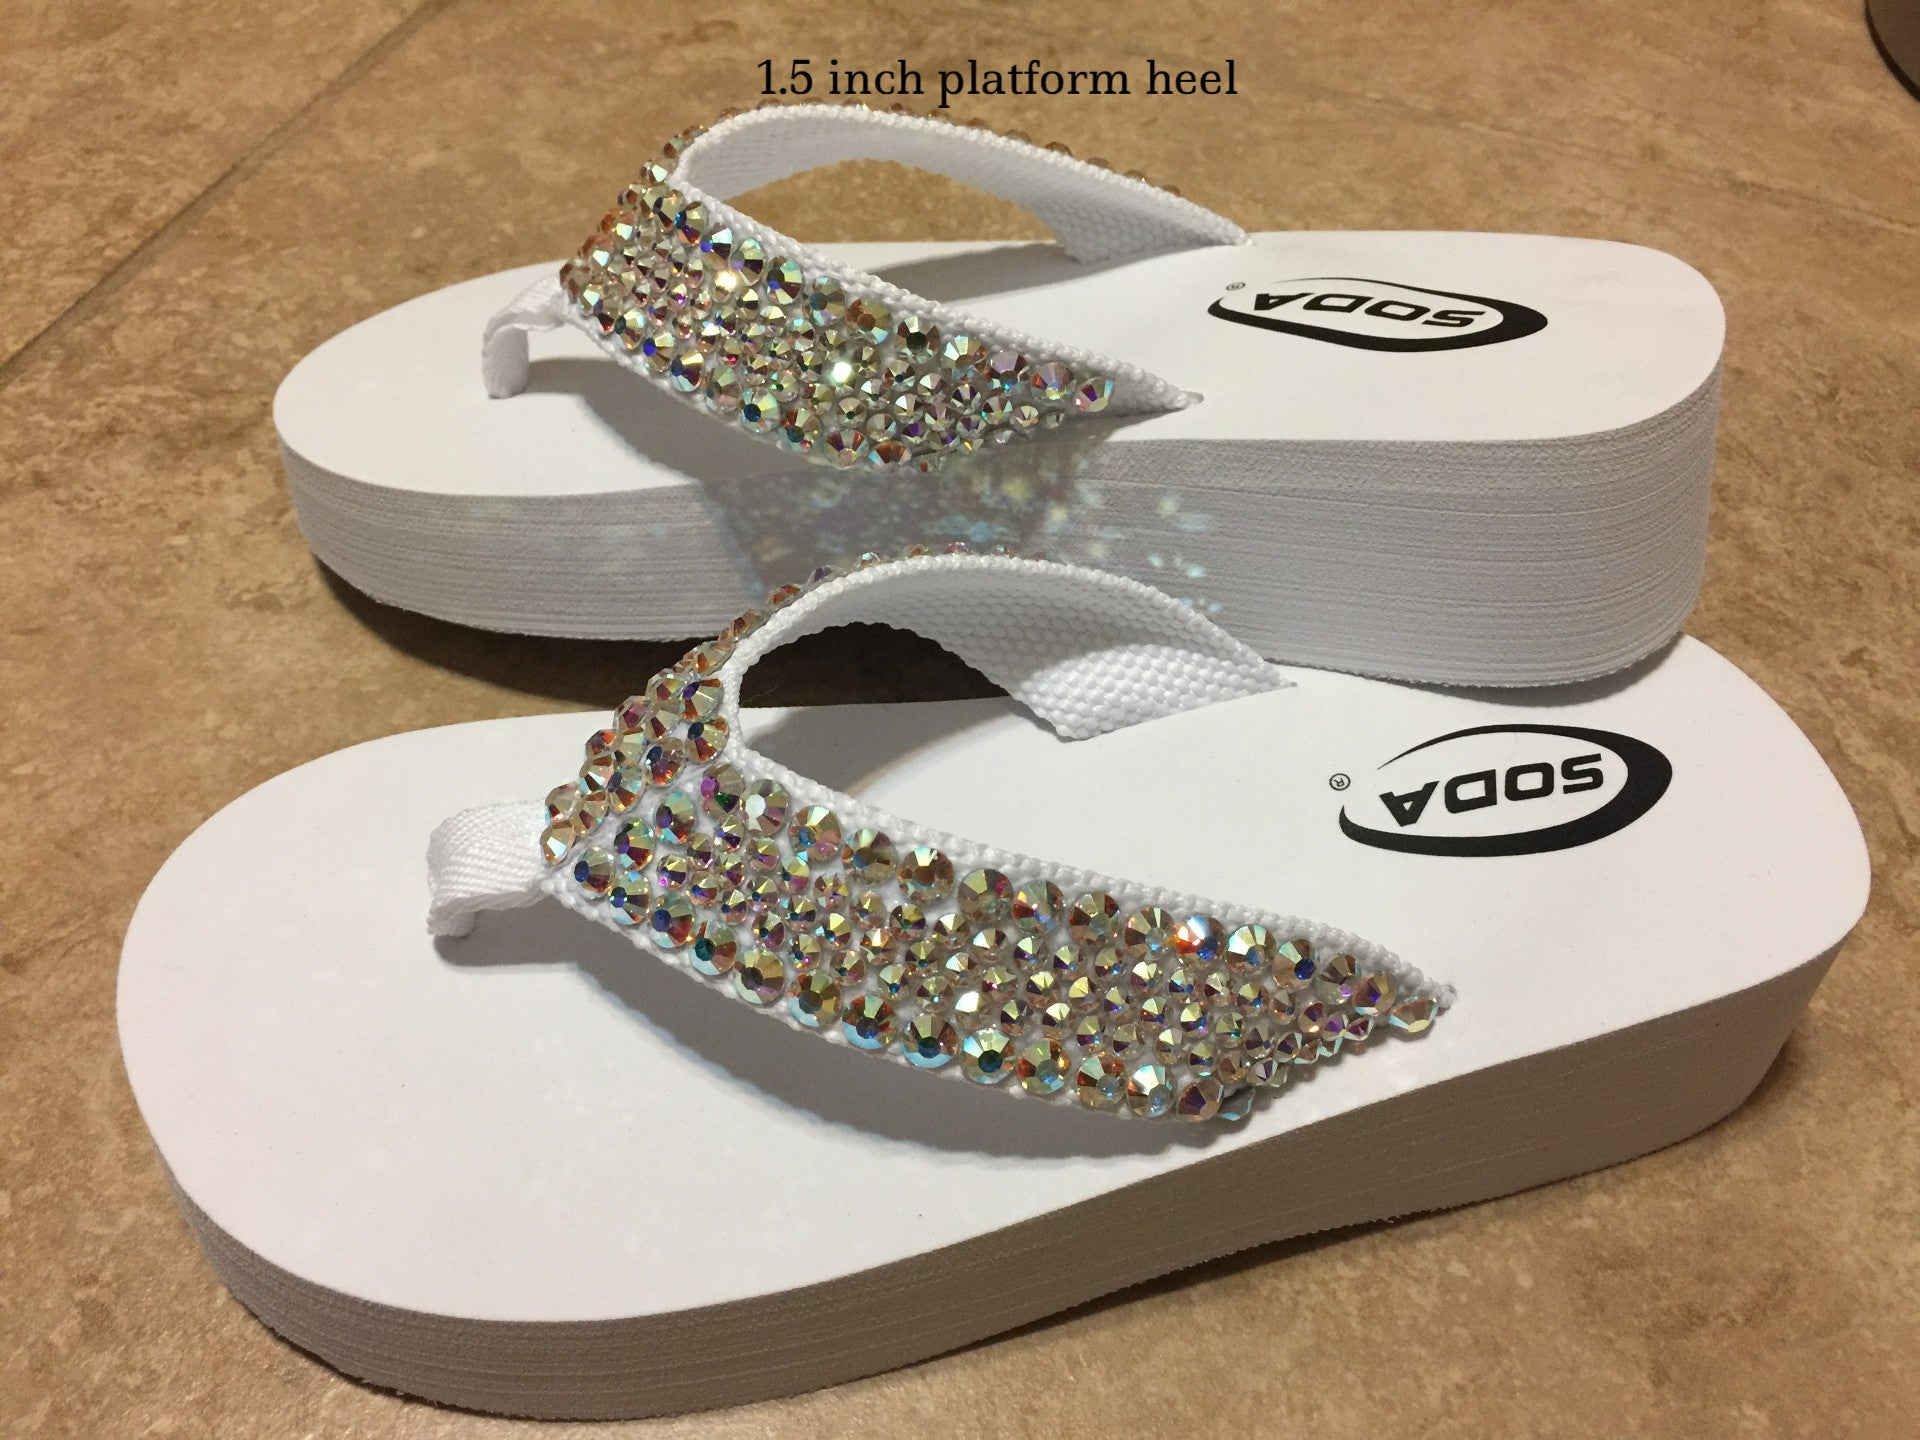 6e7f059c8d433f Diamond Diva s White Wedding Swarovksi Crystal Platform Flip-flops Sandals  by Sparkle Steps